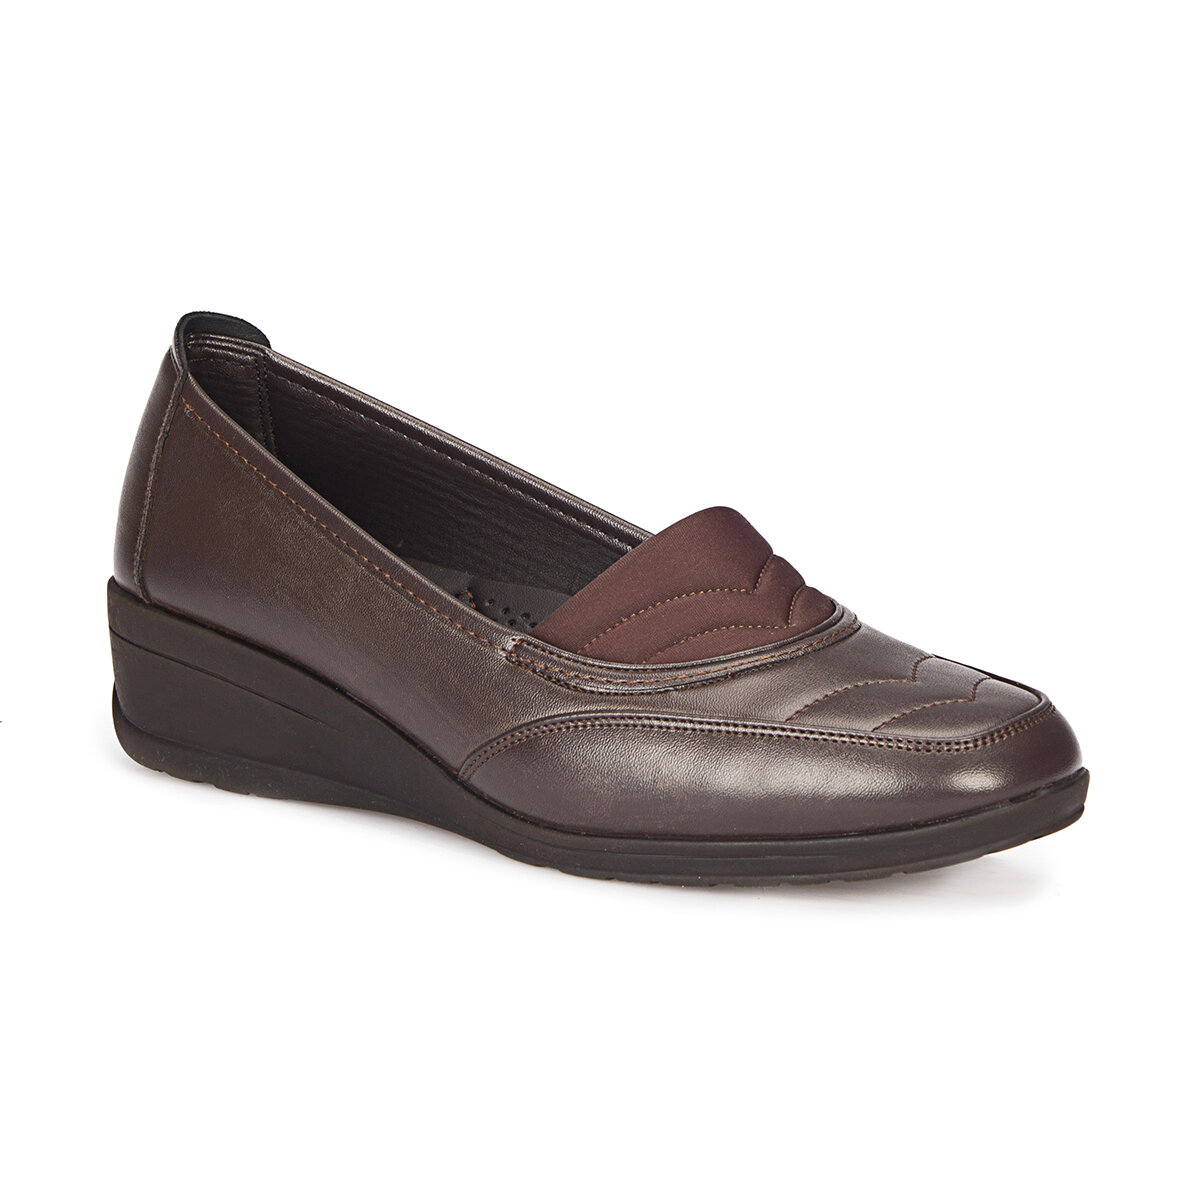 FLO 72. 158046.Z Brown Women 'S Comfort Shoes Polaris